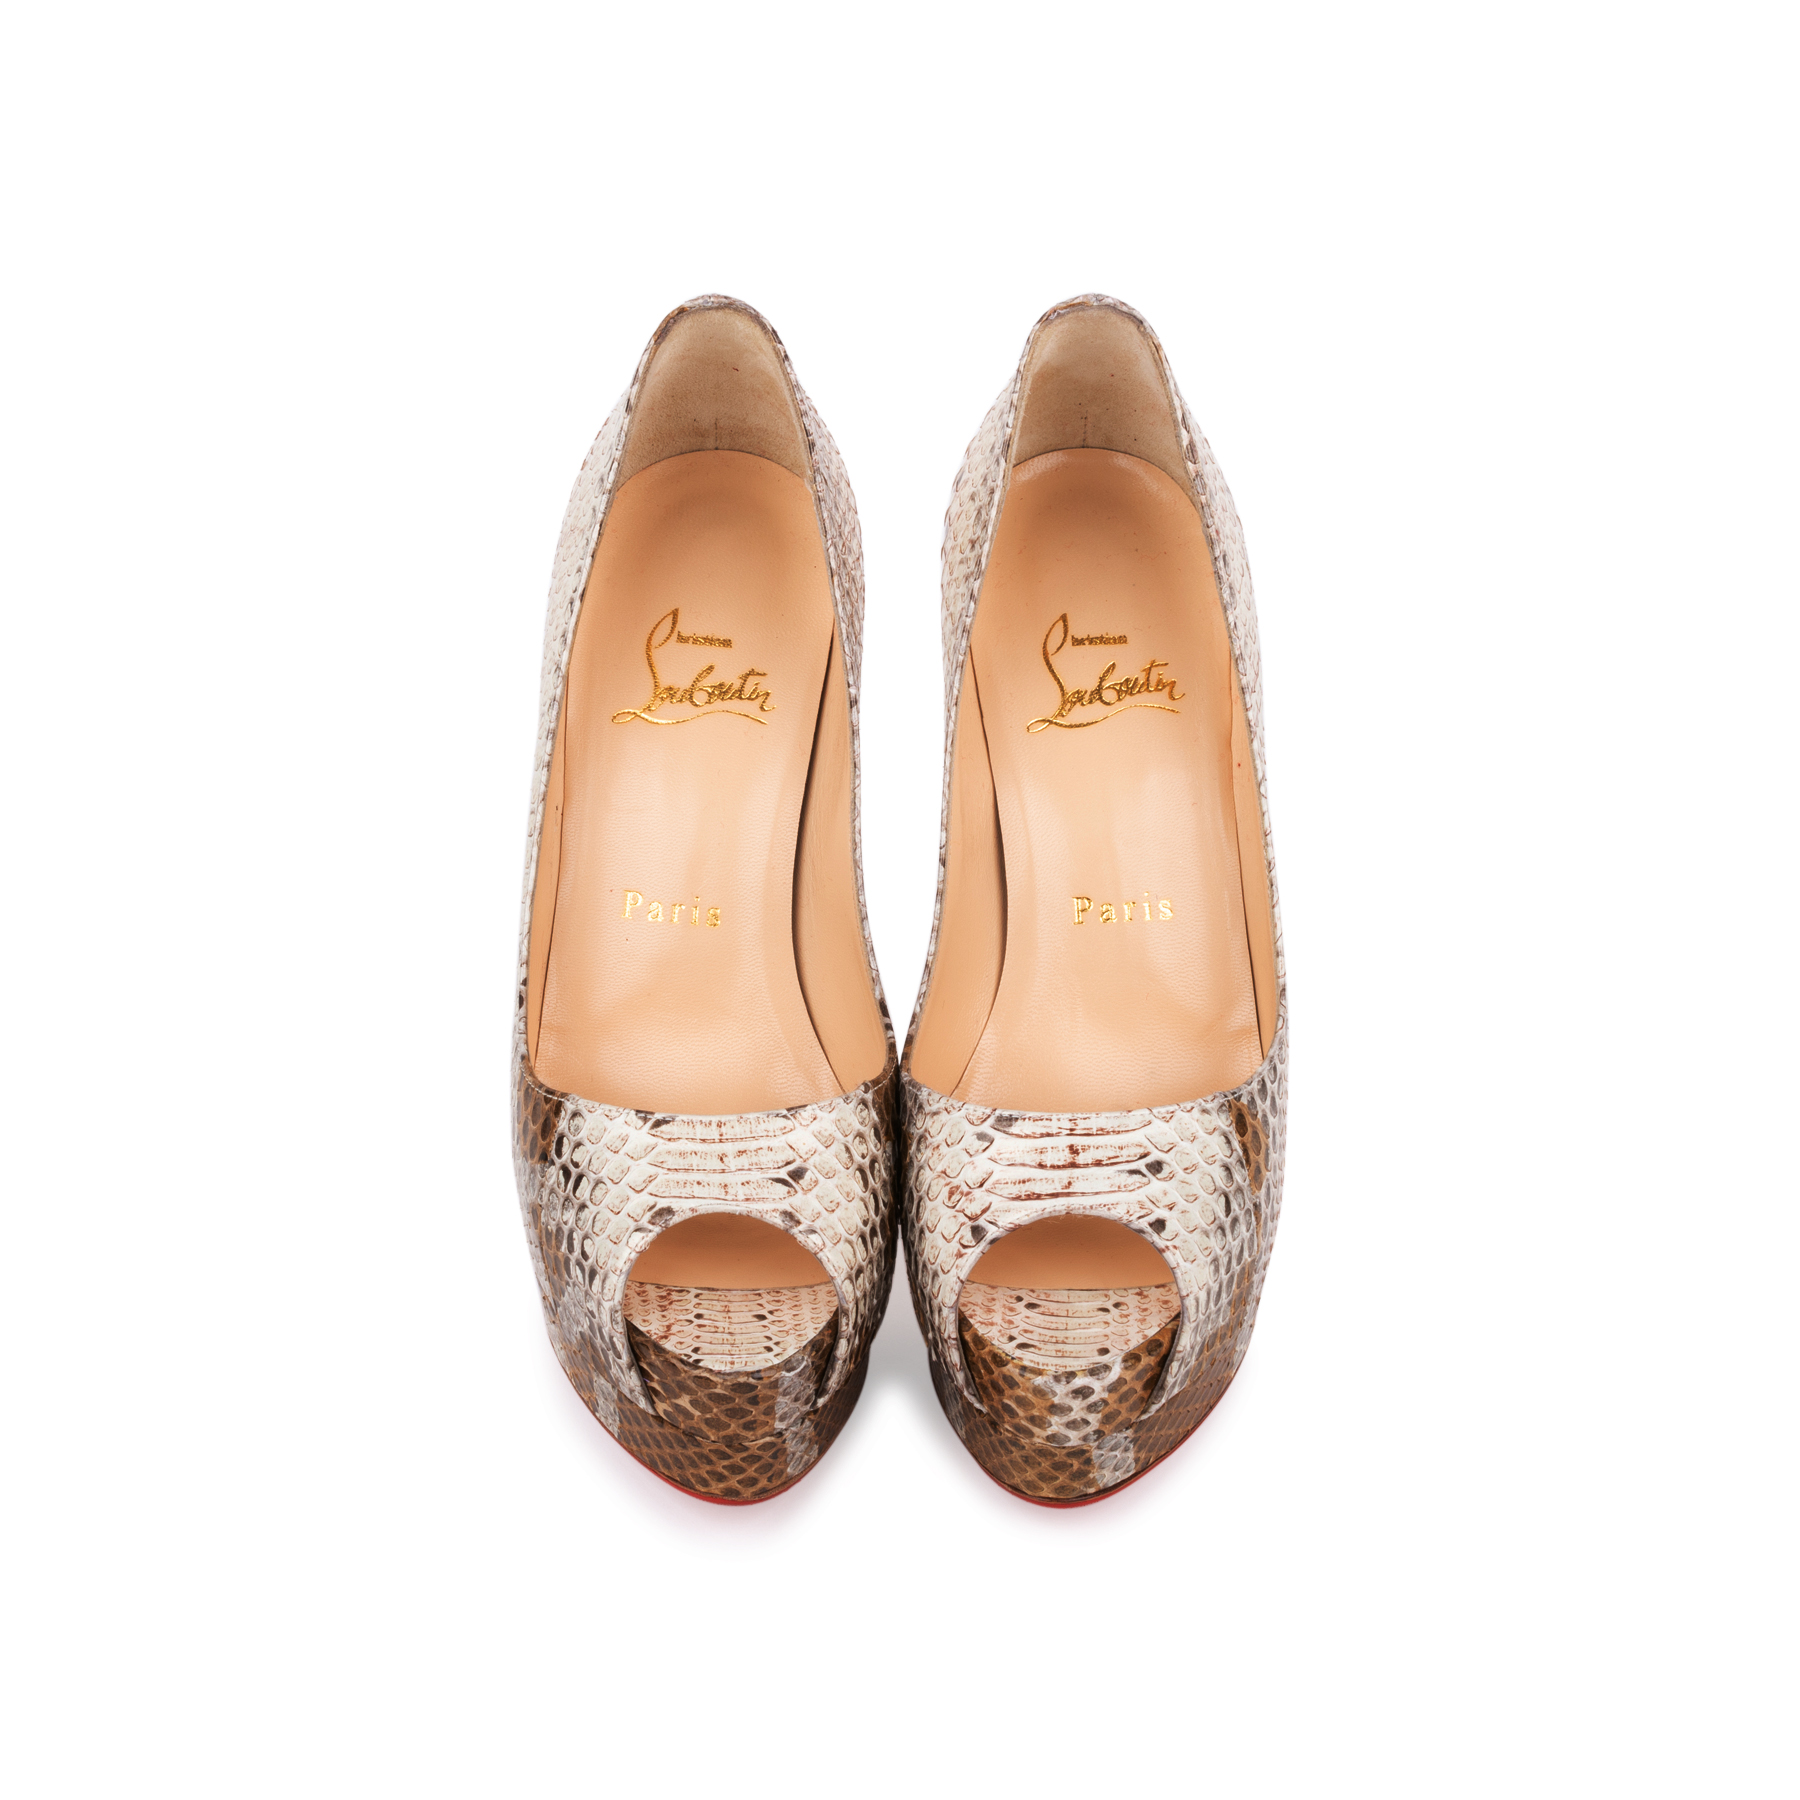 51085f63a1c61 Authentic Second Hand Christian Louboutin Altadama Watersnake 140 Pumps  (PSS-556-00021) - THE FIFTH COLLECTION